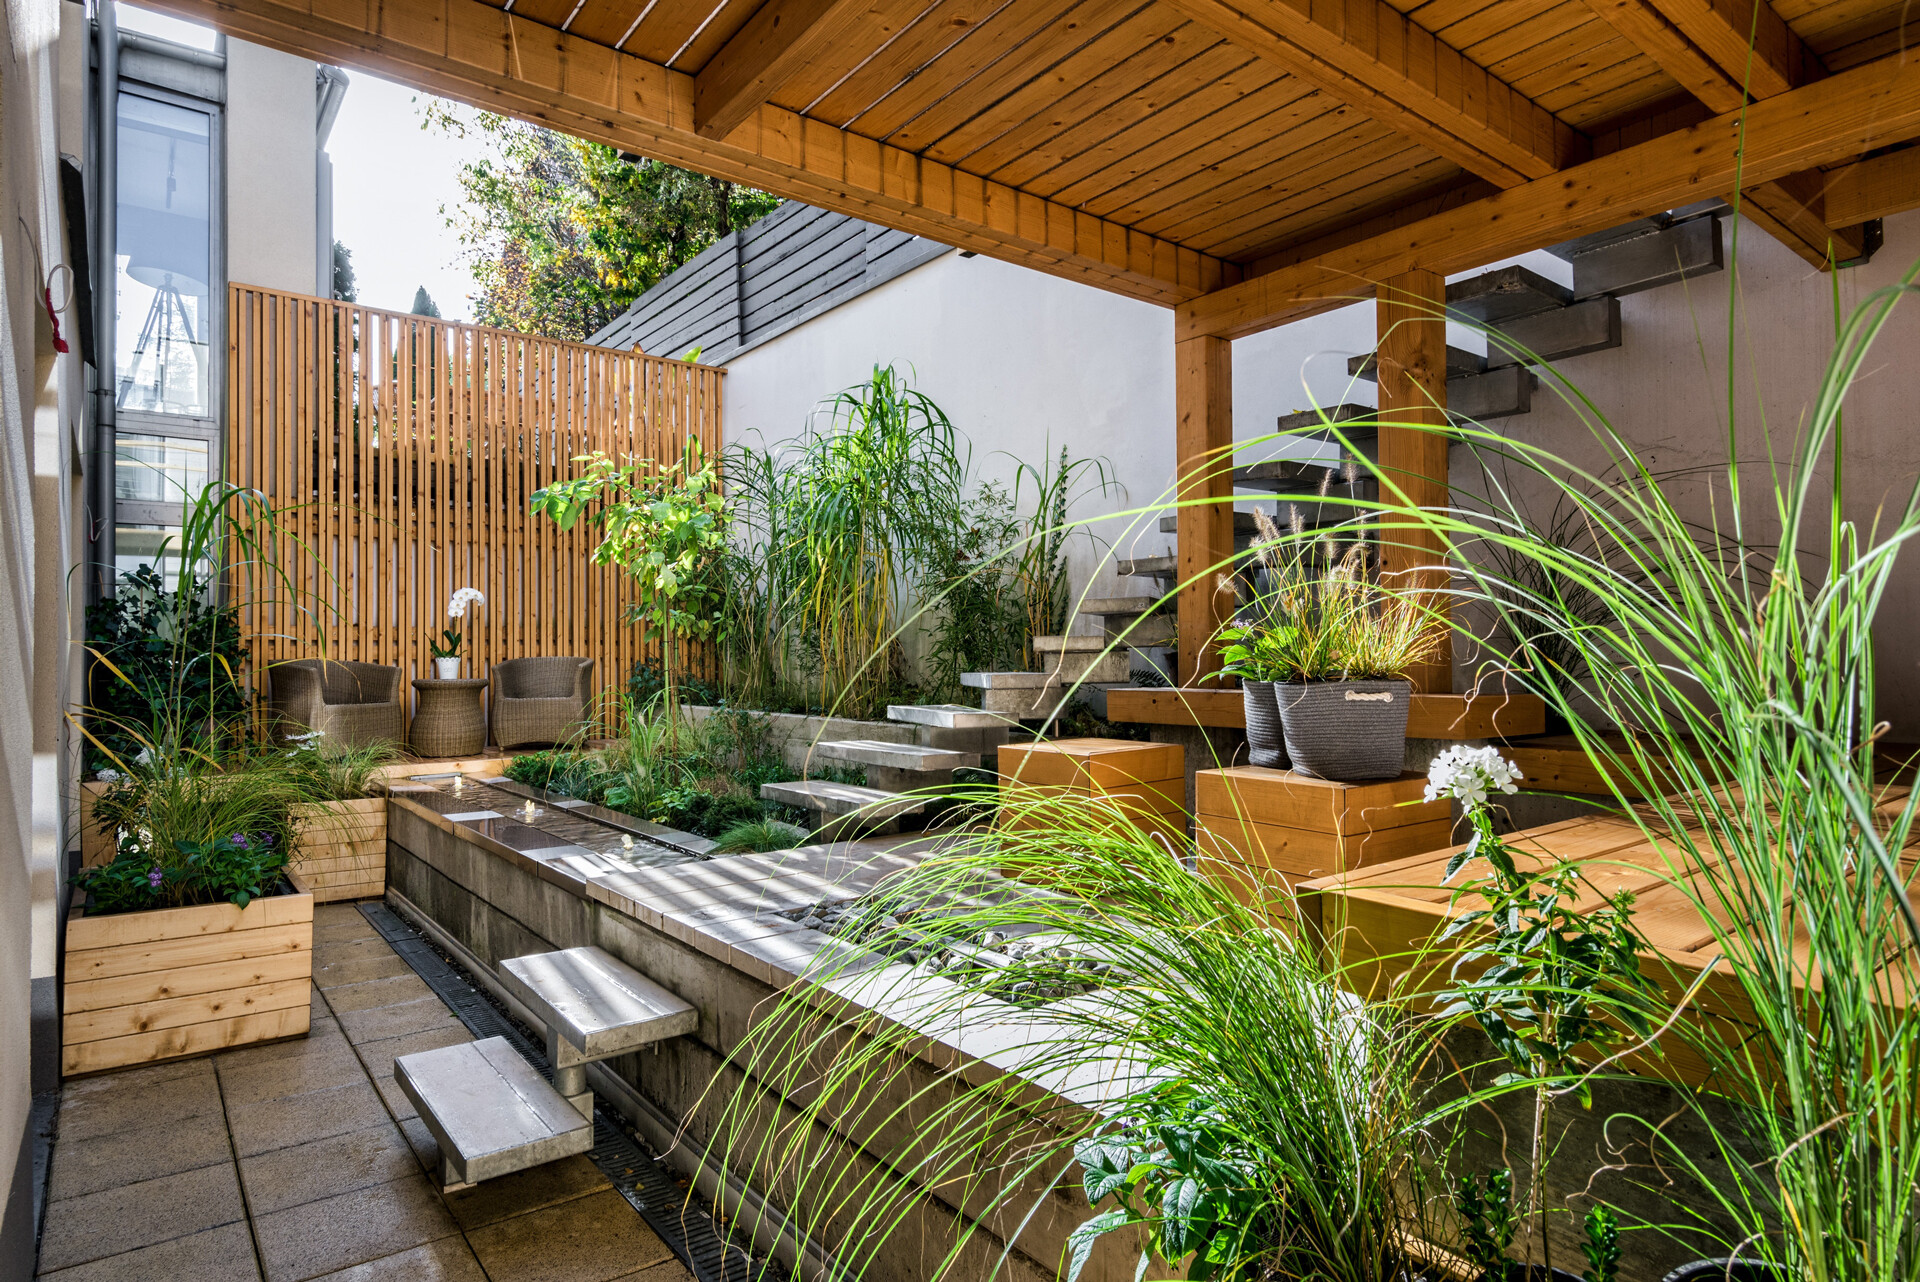 Plants add greenery that add life to your patio